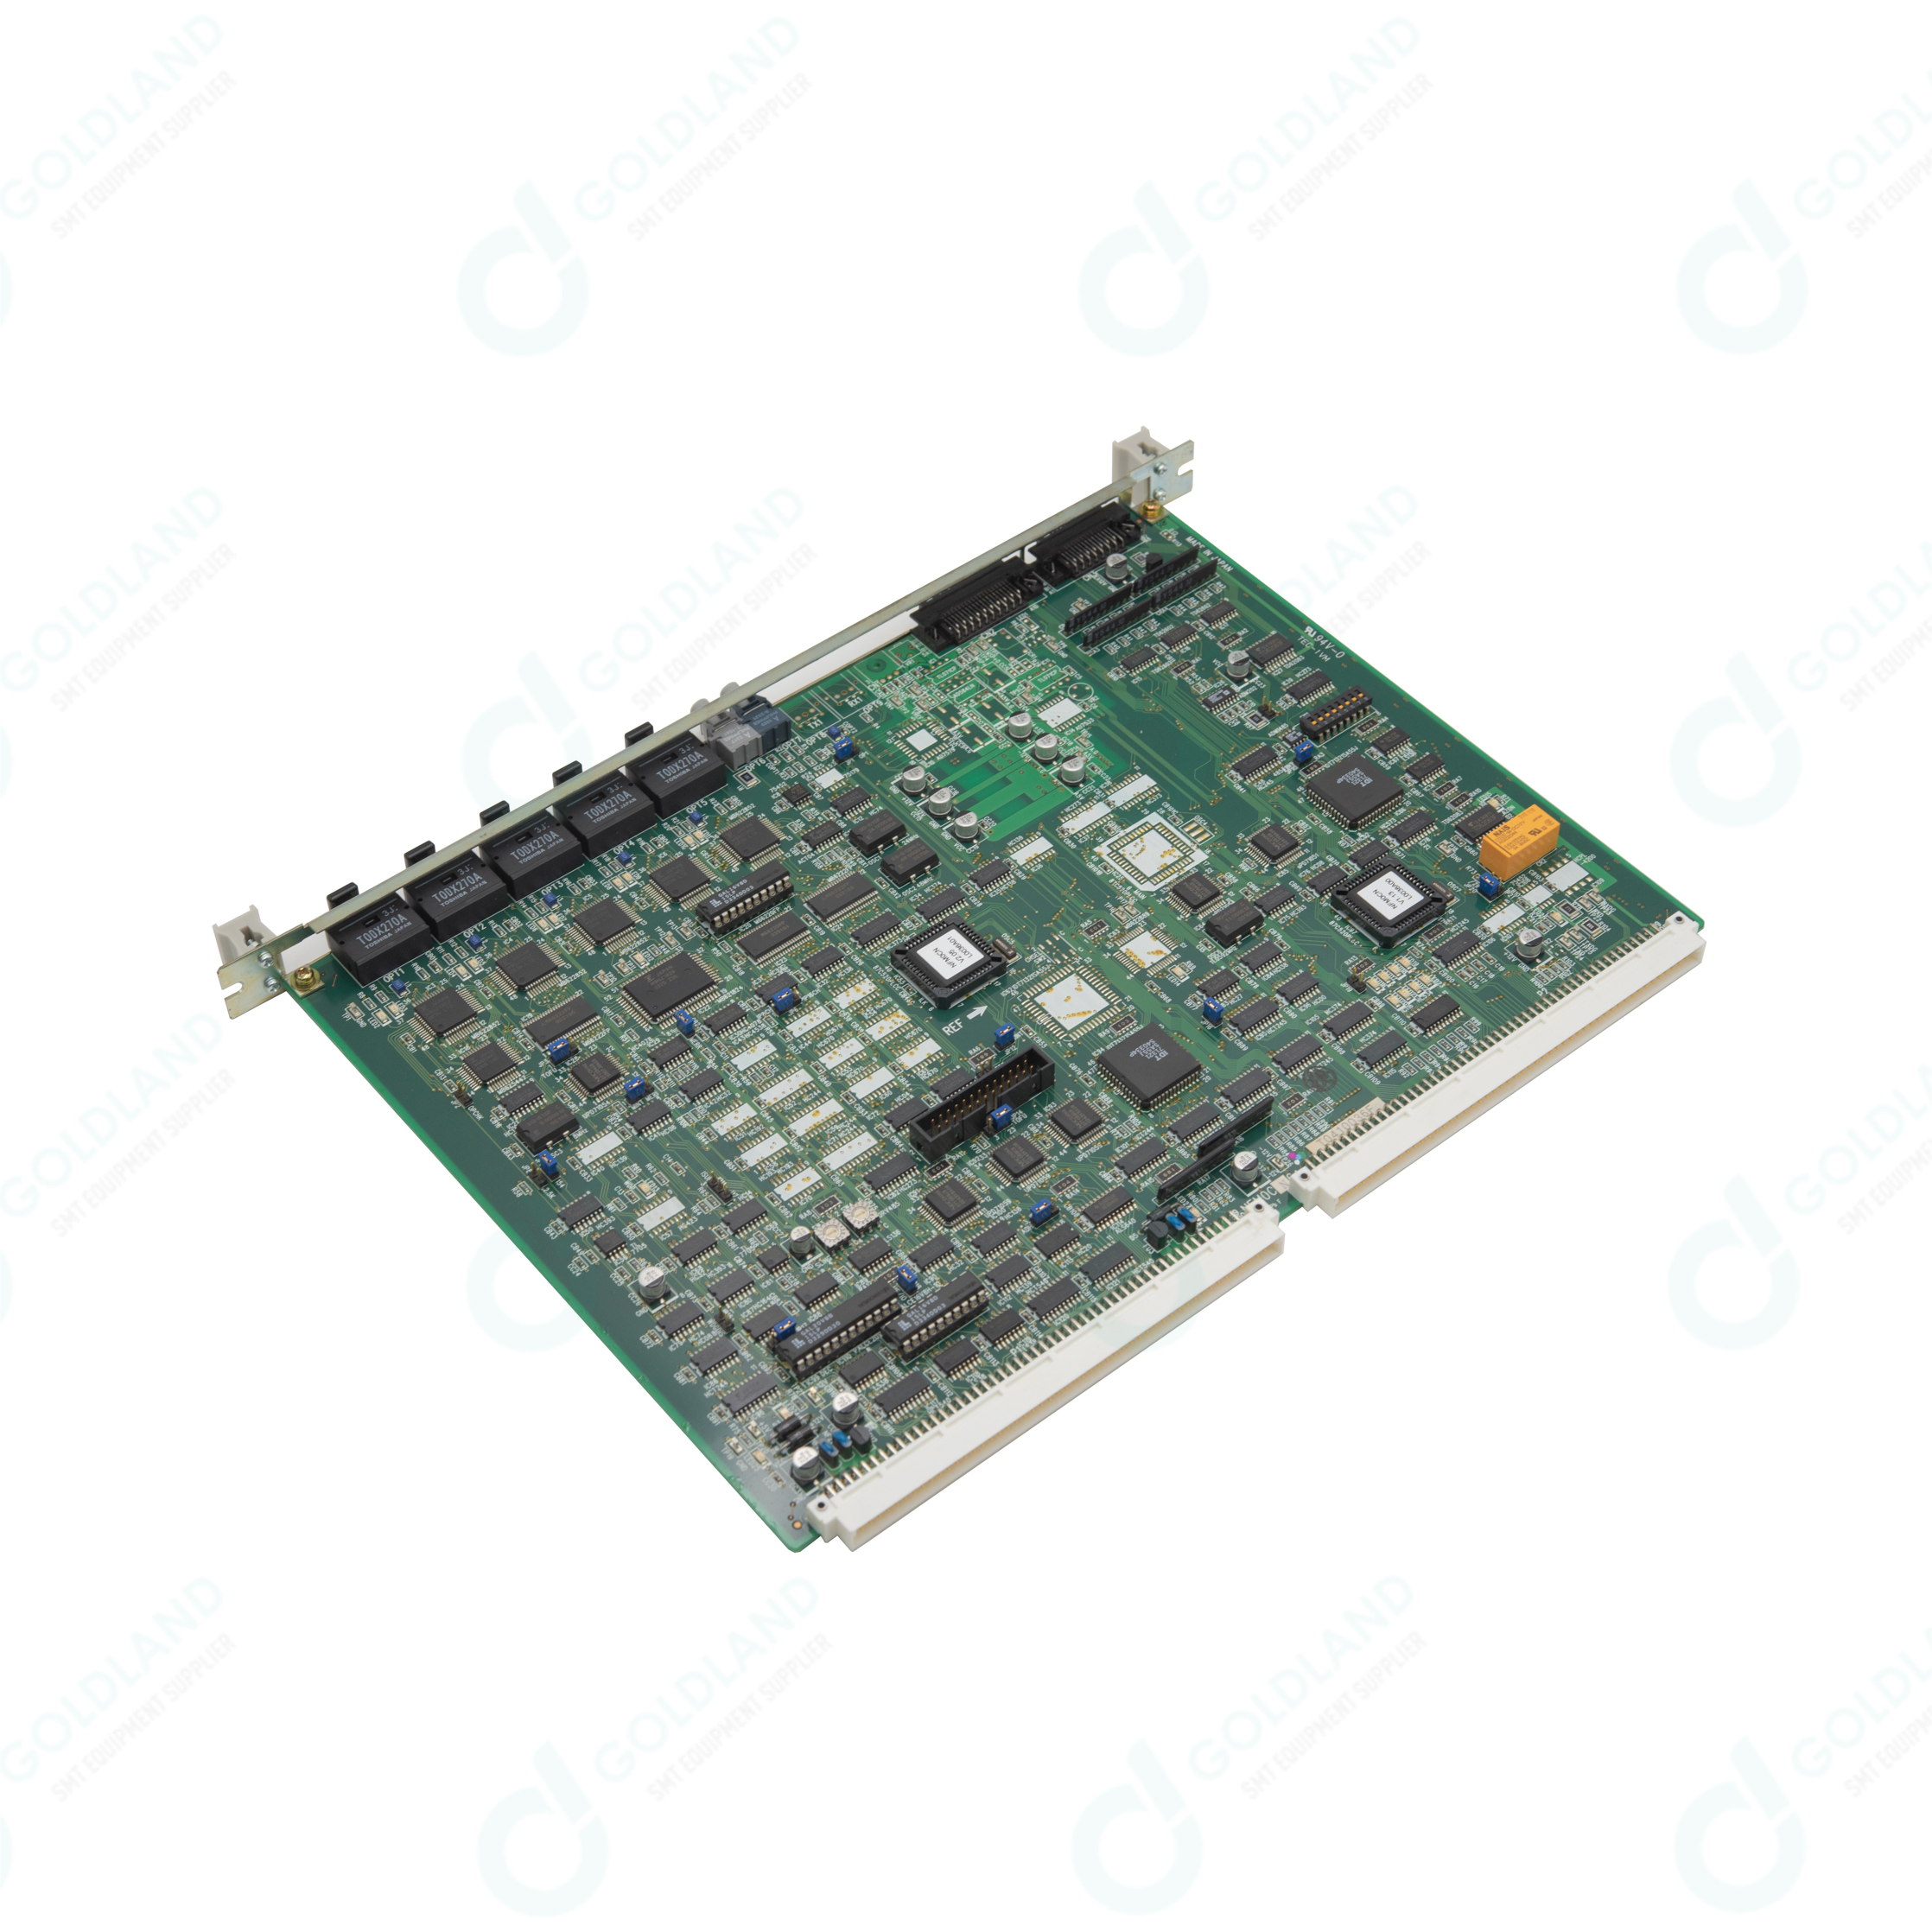 SMT Printers Spare parts KXFE0013A00 FE58974-01 SP60 printer PCB ASSY